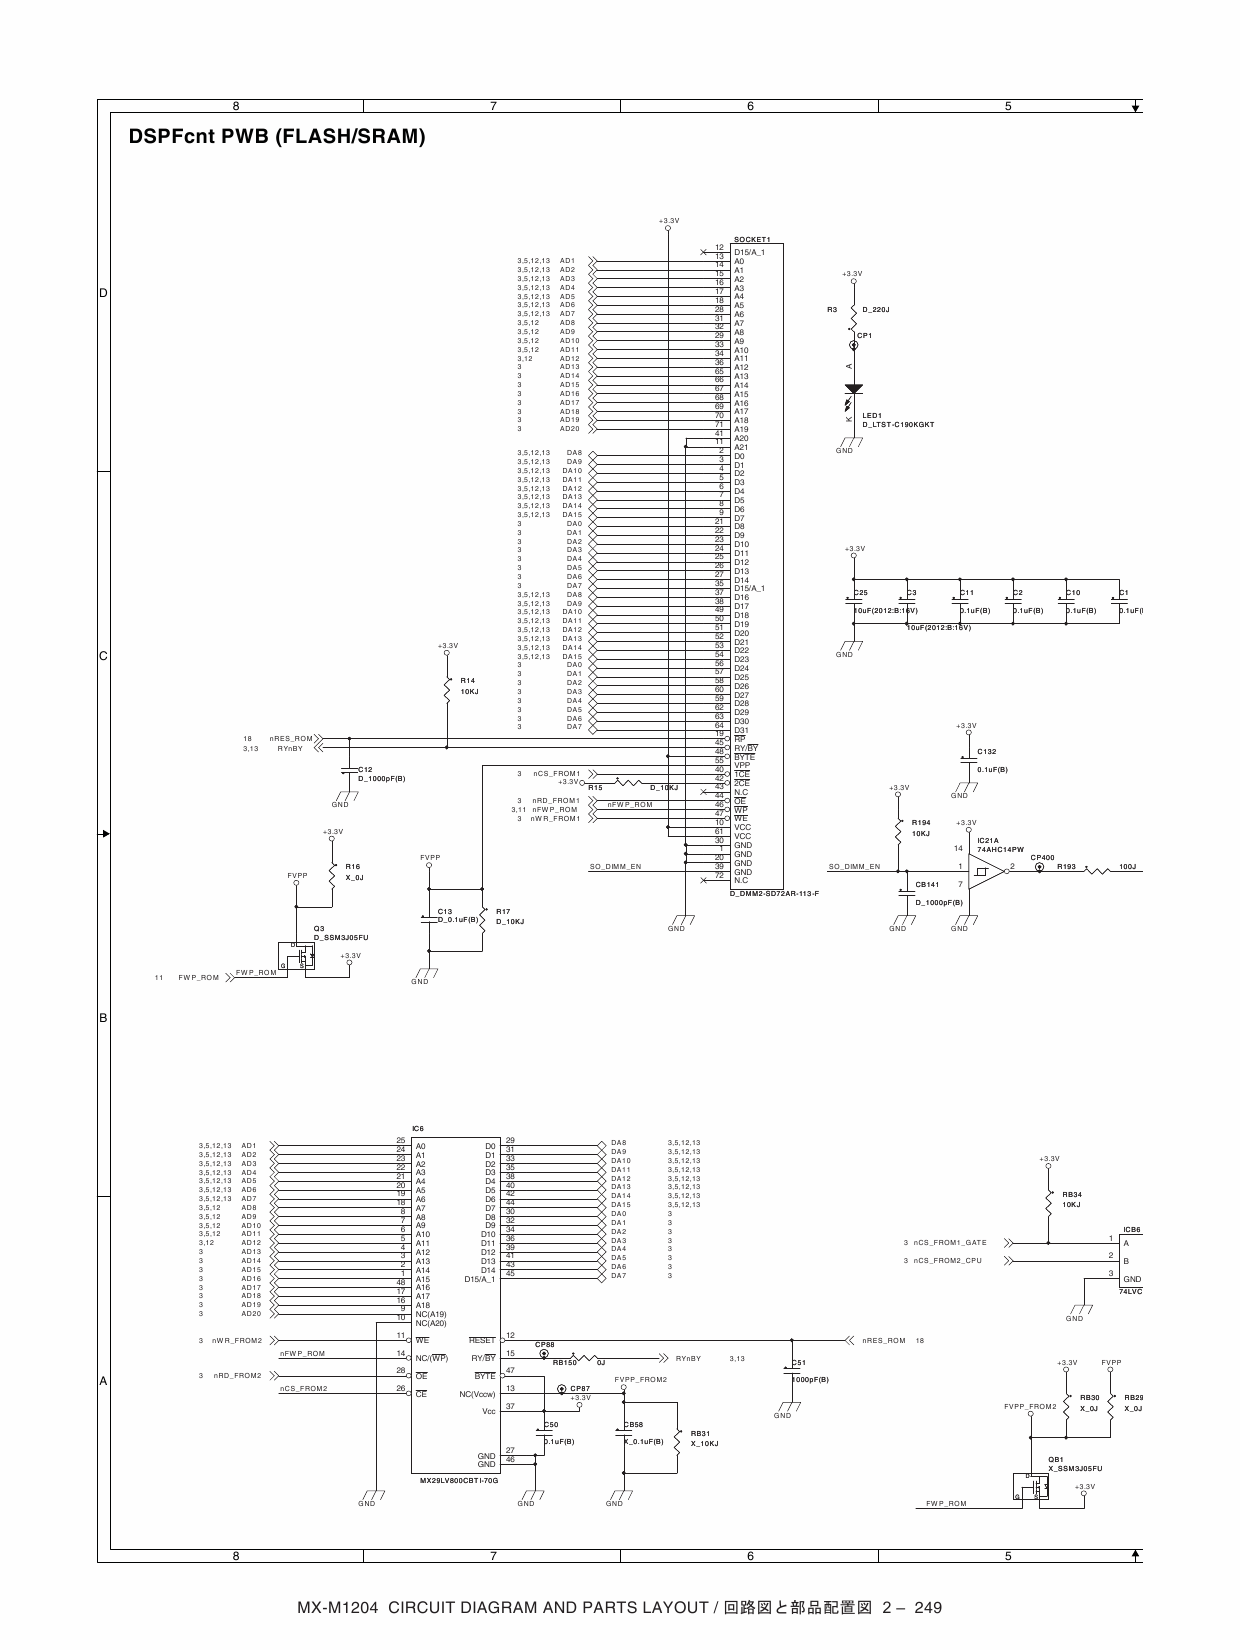 sharp mx m904 m1054 m1204 circuit diagrams